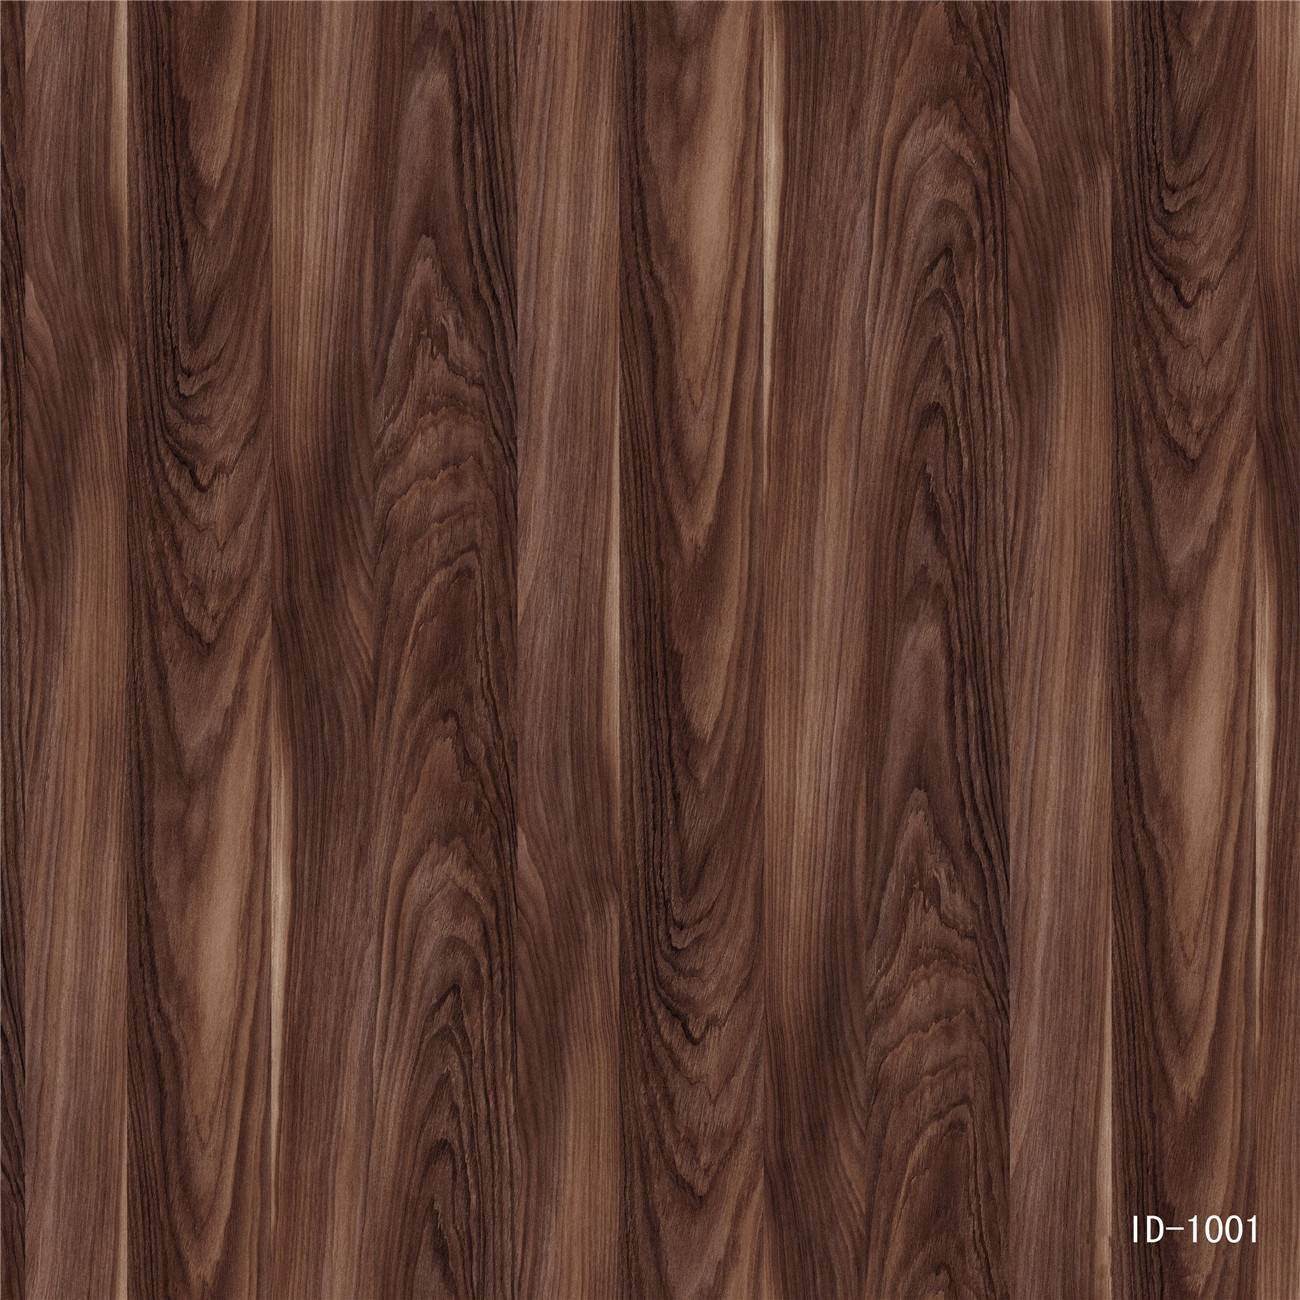 I.DECOR ID-1001 Walnut up to 7 feet HOT SALE image1